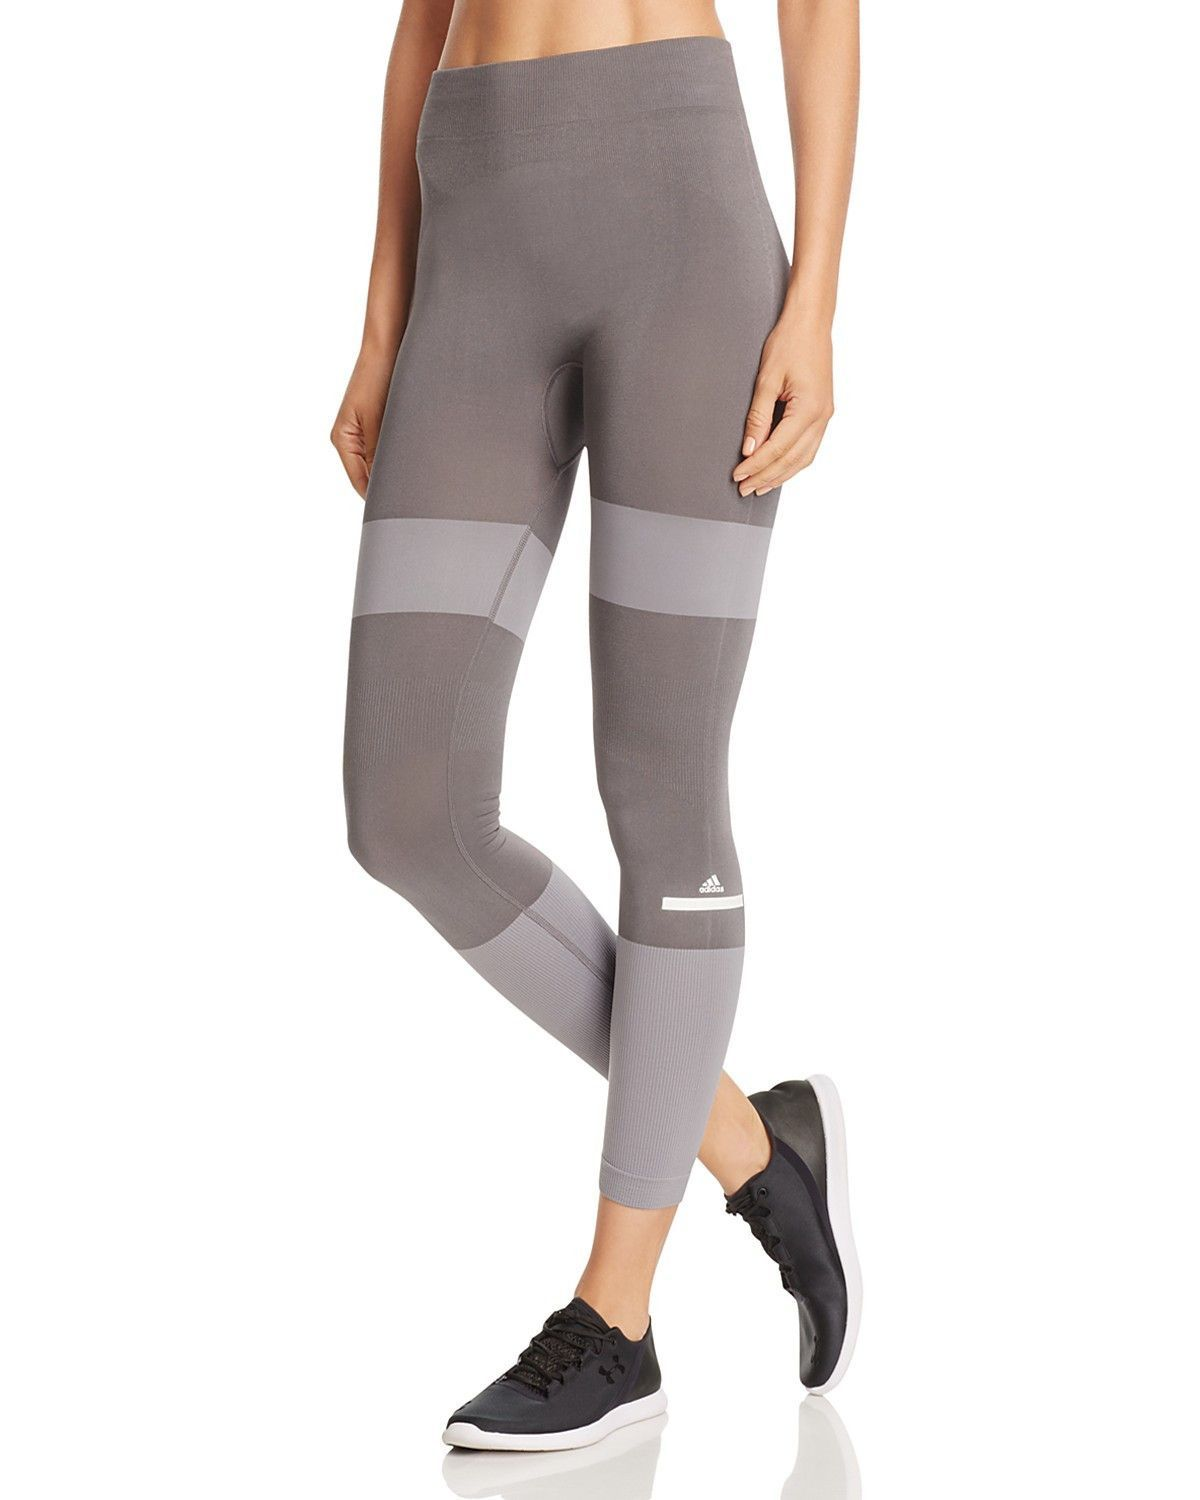 83ac5eb1dd69e Tight fitting - The material of the Yoga Seamless Tight is ClimaLite keeps  your body dry by drawing sweat away from skin - The seamless garment  provides ...